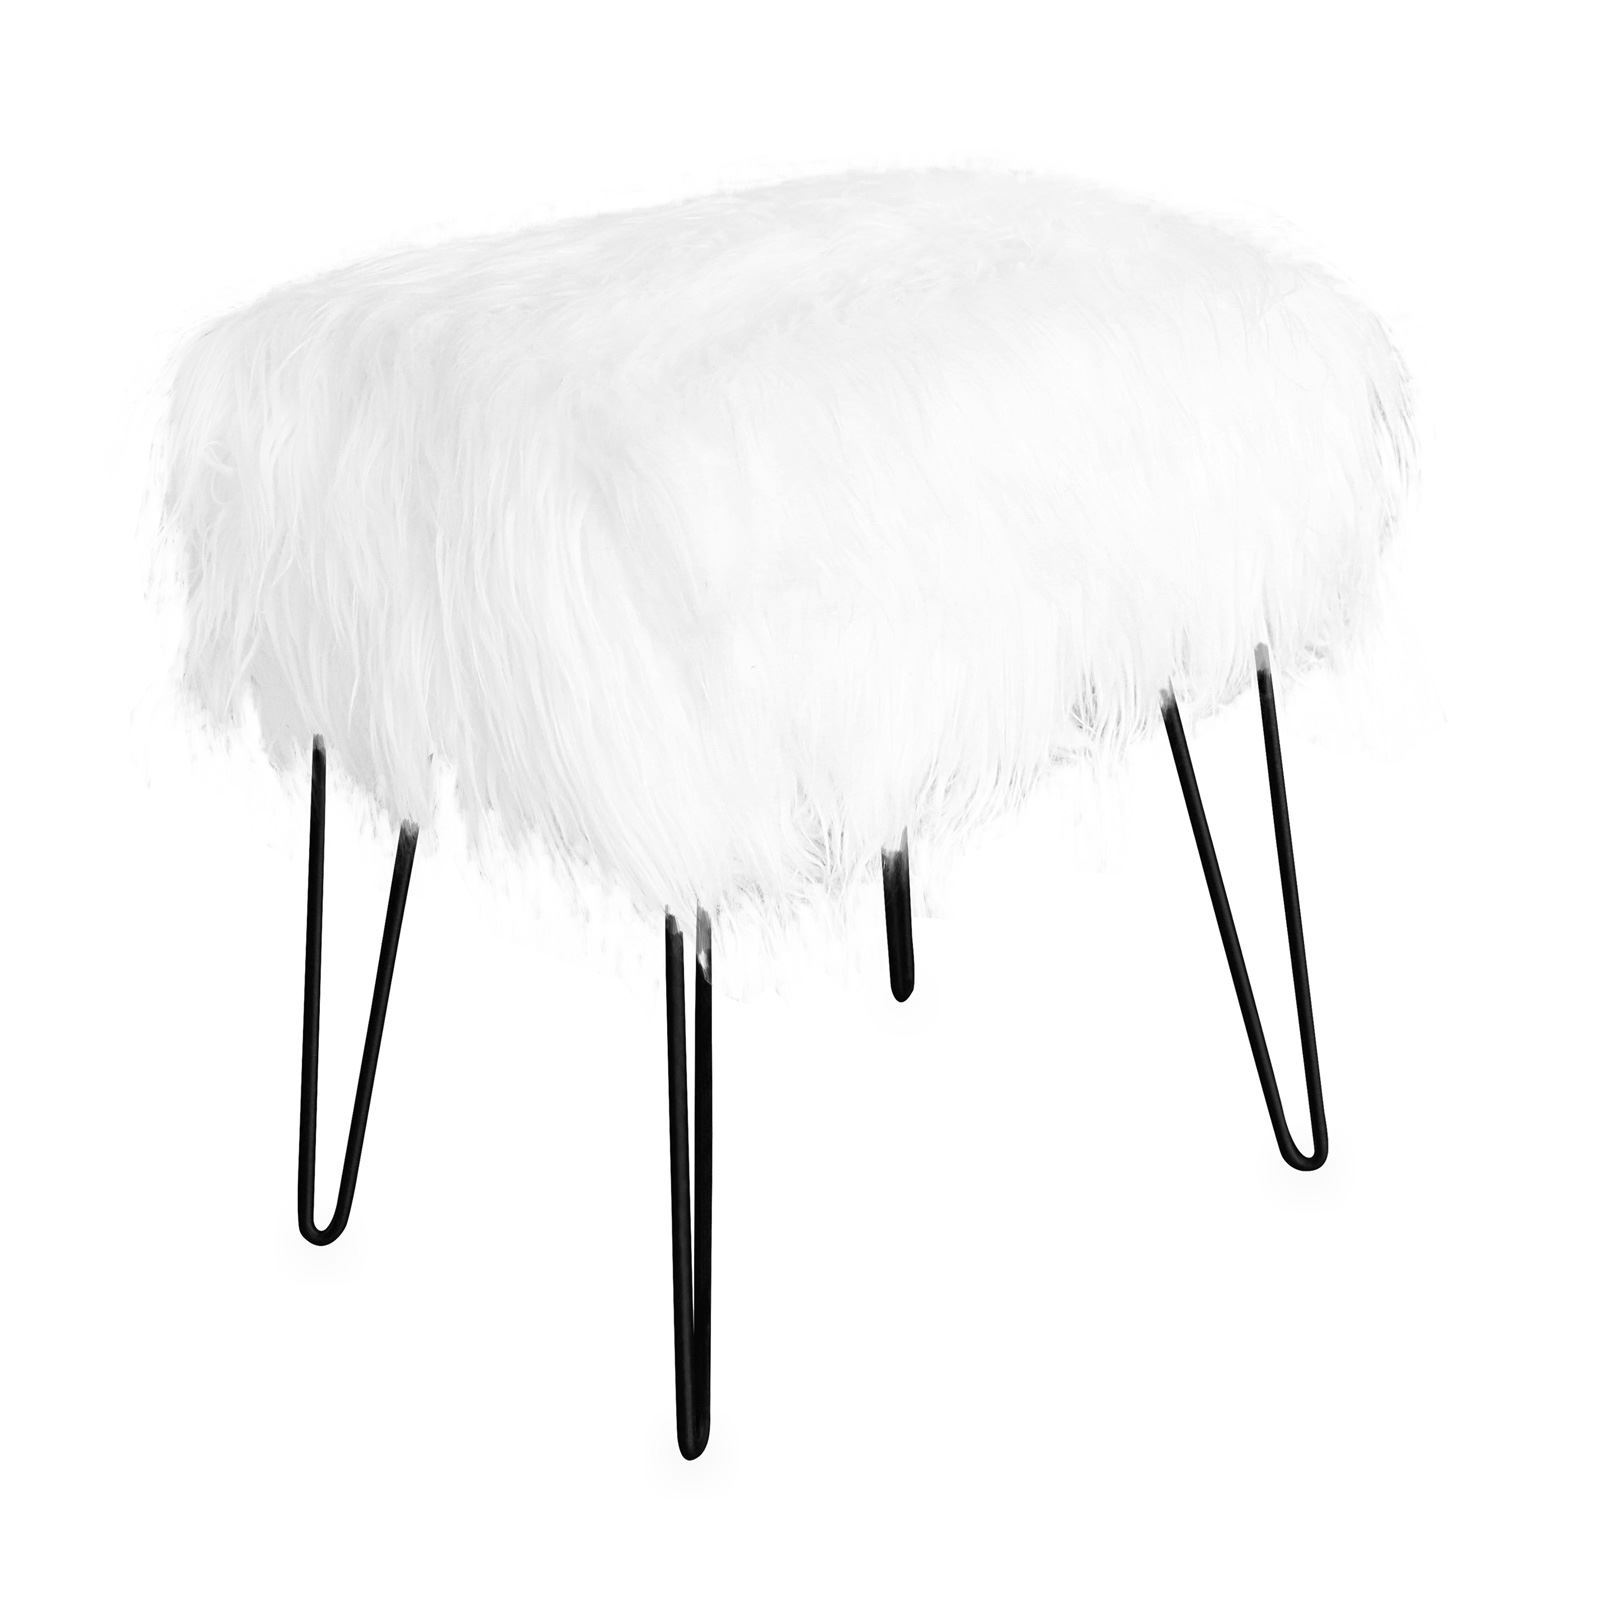 jean louis scherrer fur tabouret fausse fourrure blanc brandalley. Black Bedroom Furniture Sets. Home Design Ideas